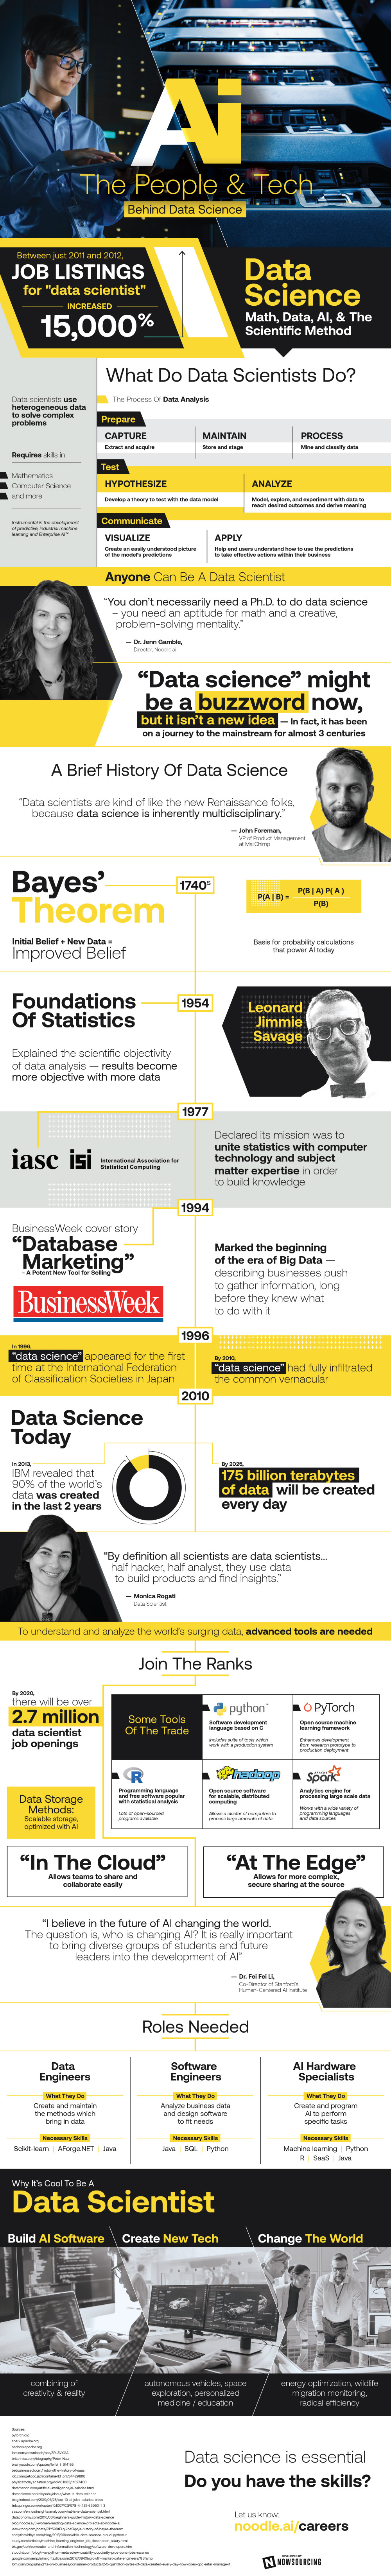 How Data Science Works 2